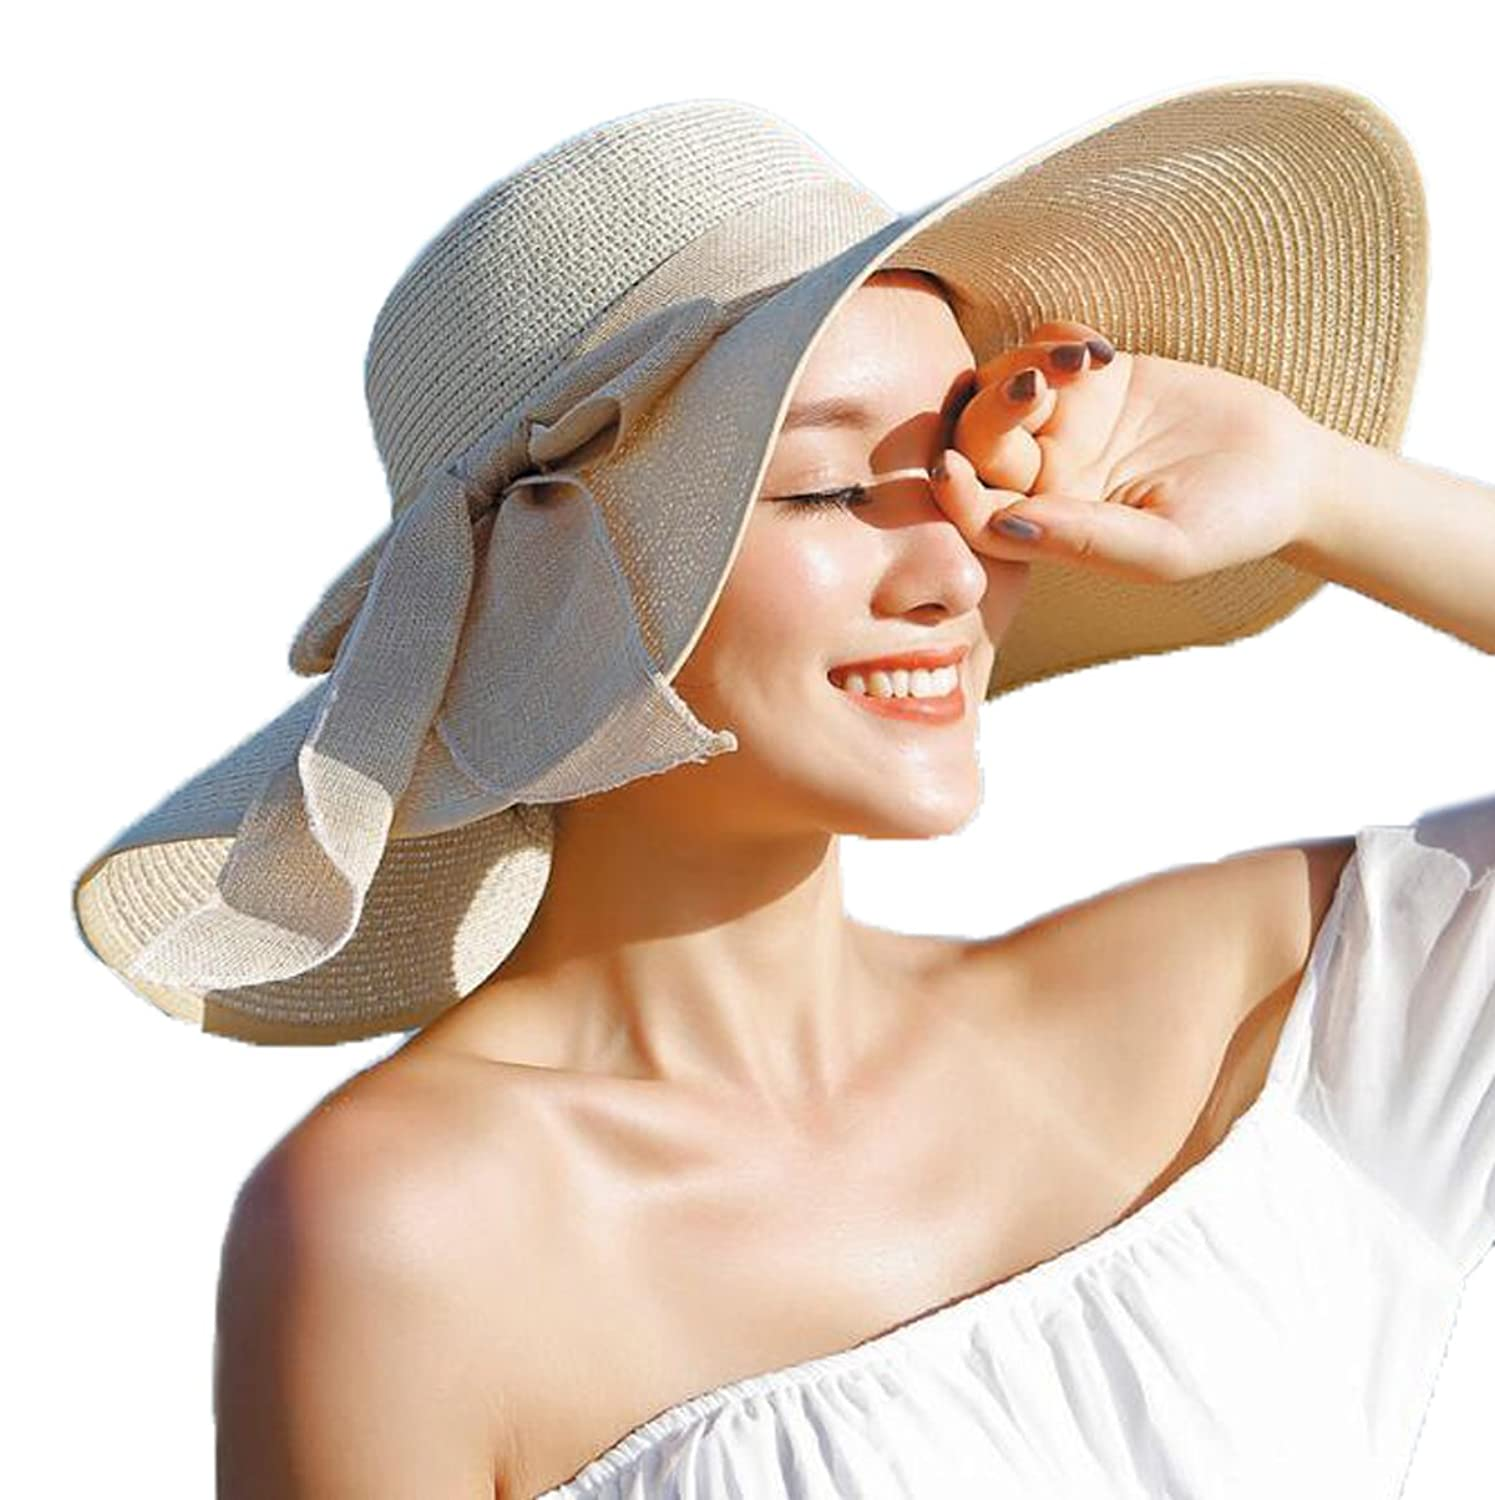 605ab5dc Relax in the sun and show the world your current feelings with our gorgeous  embroidered words sun hat. This cute neutral color panama/floppy style hat  has a ...